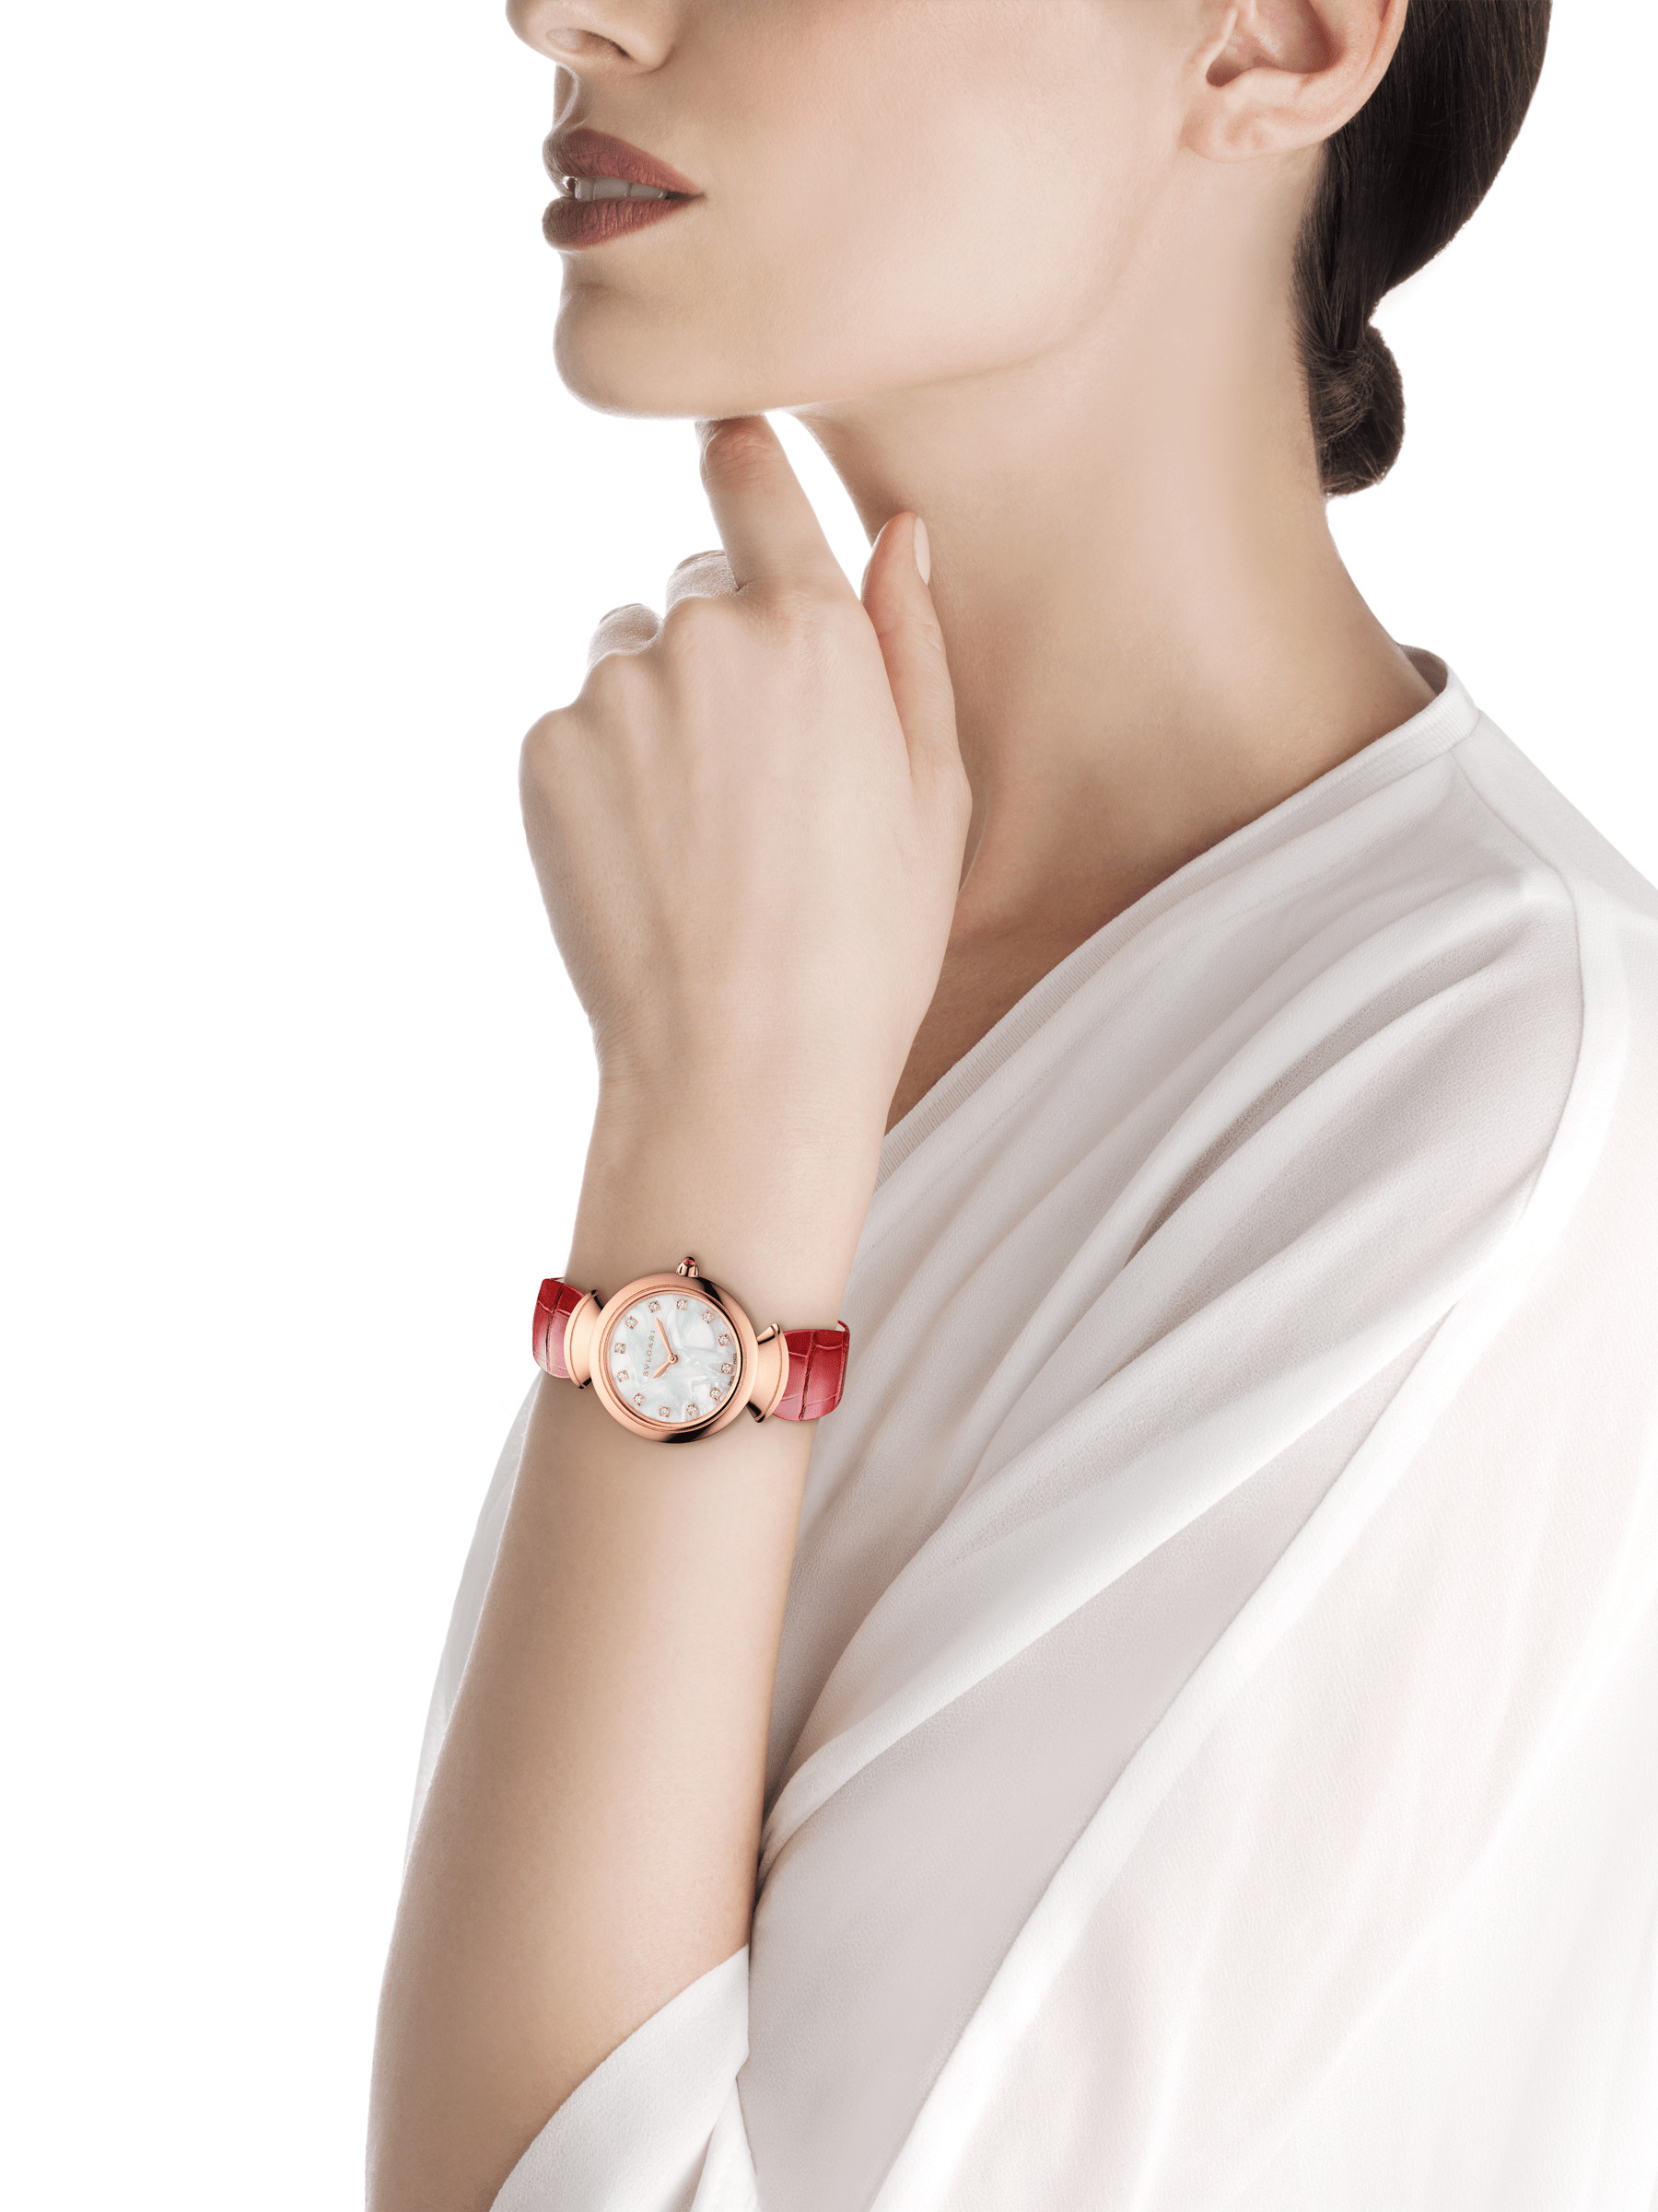 DIVAS' DREAM watch with 18 kt rose gold case, white acetate dial set with diamond indexes and red alligator bracelet. 102840 image 4